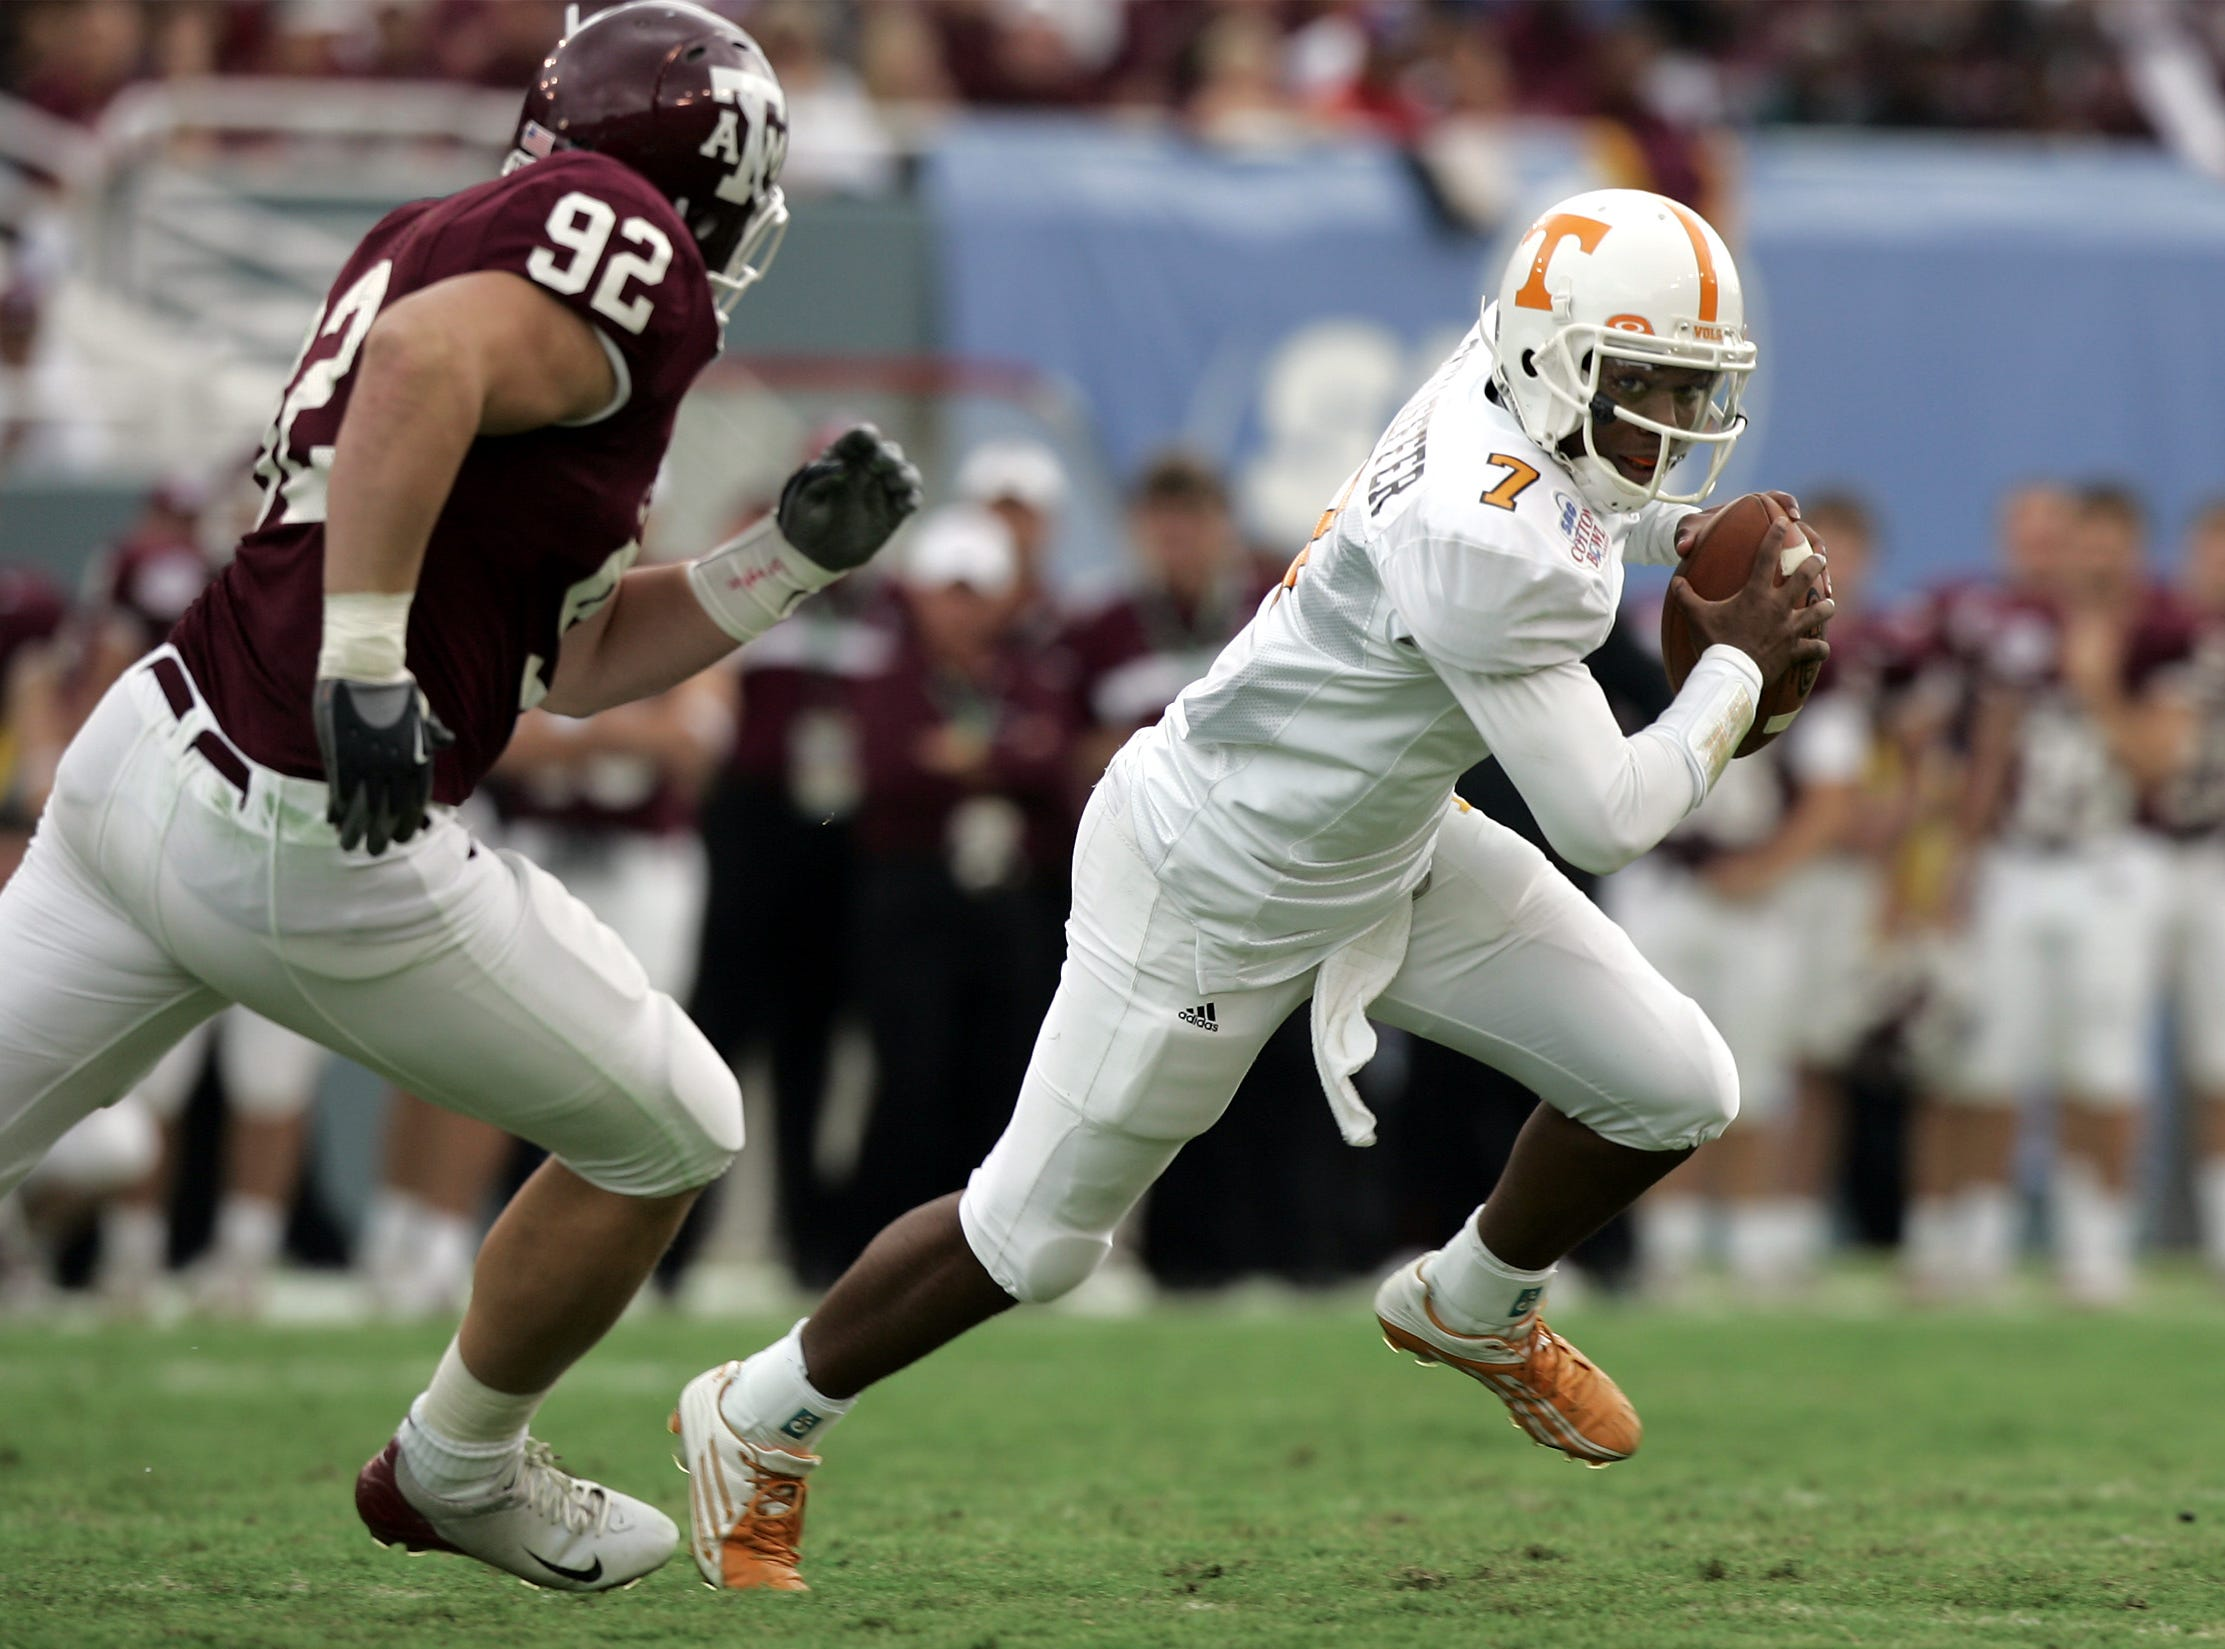 Tennessee's Brent Schaeffer runs out of the pocket as Texas A&M's Chris Harrington pursues during the Cotton Bowl on Jan. 1, 2005 in Dallas. The Vols won 38-7.